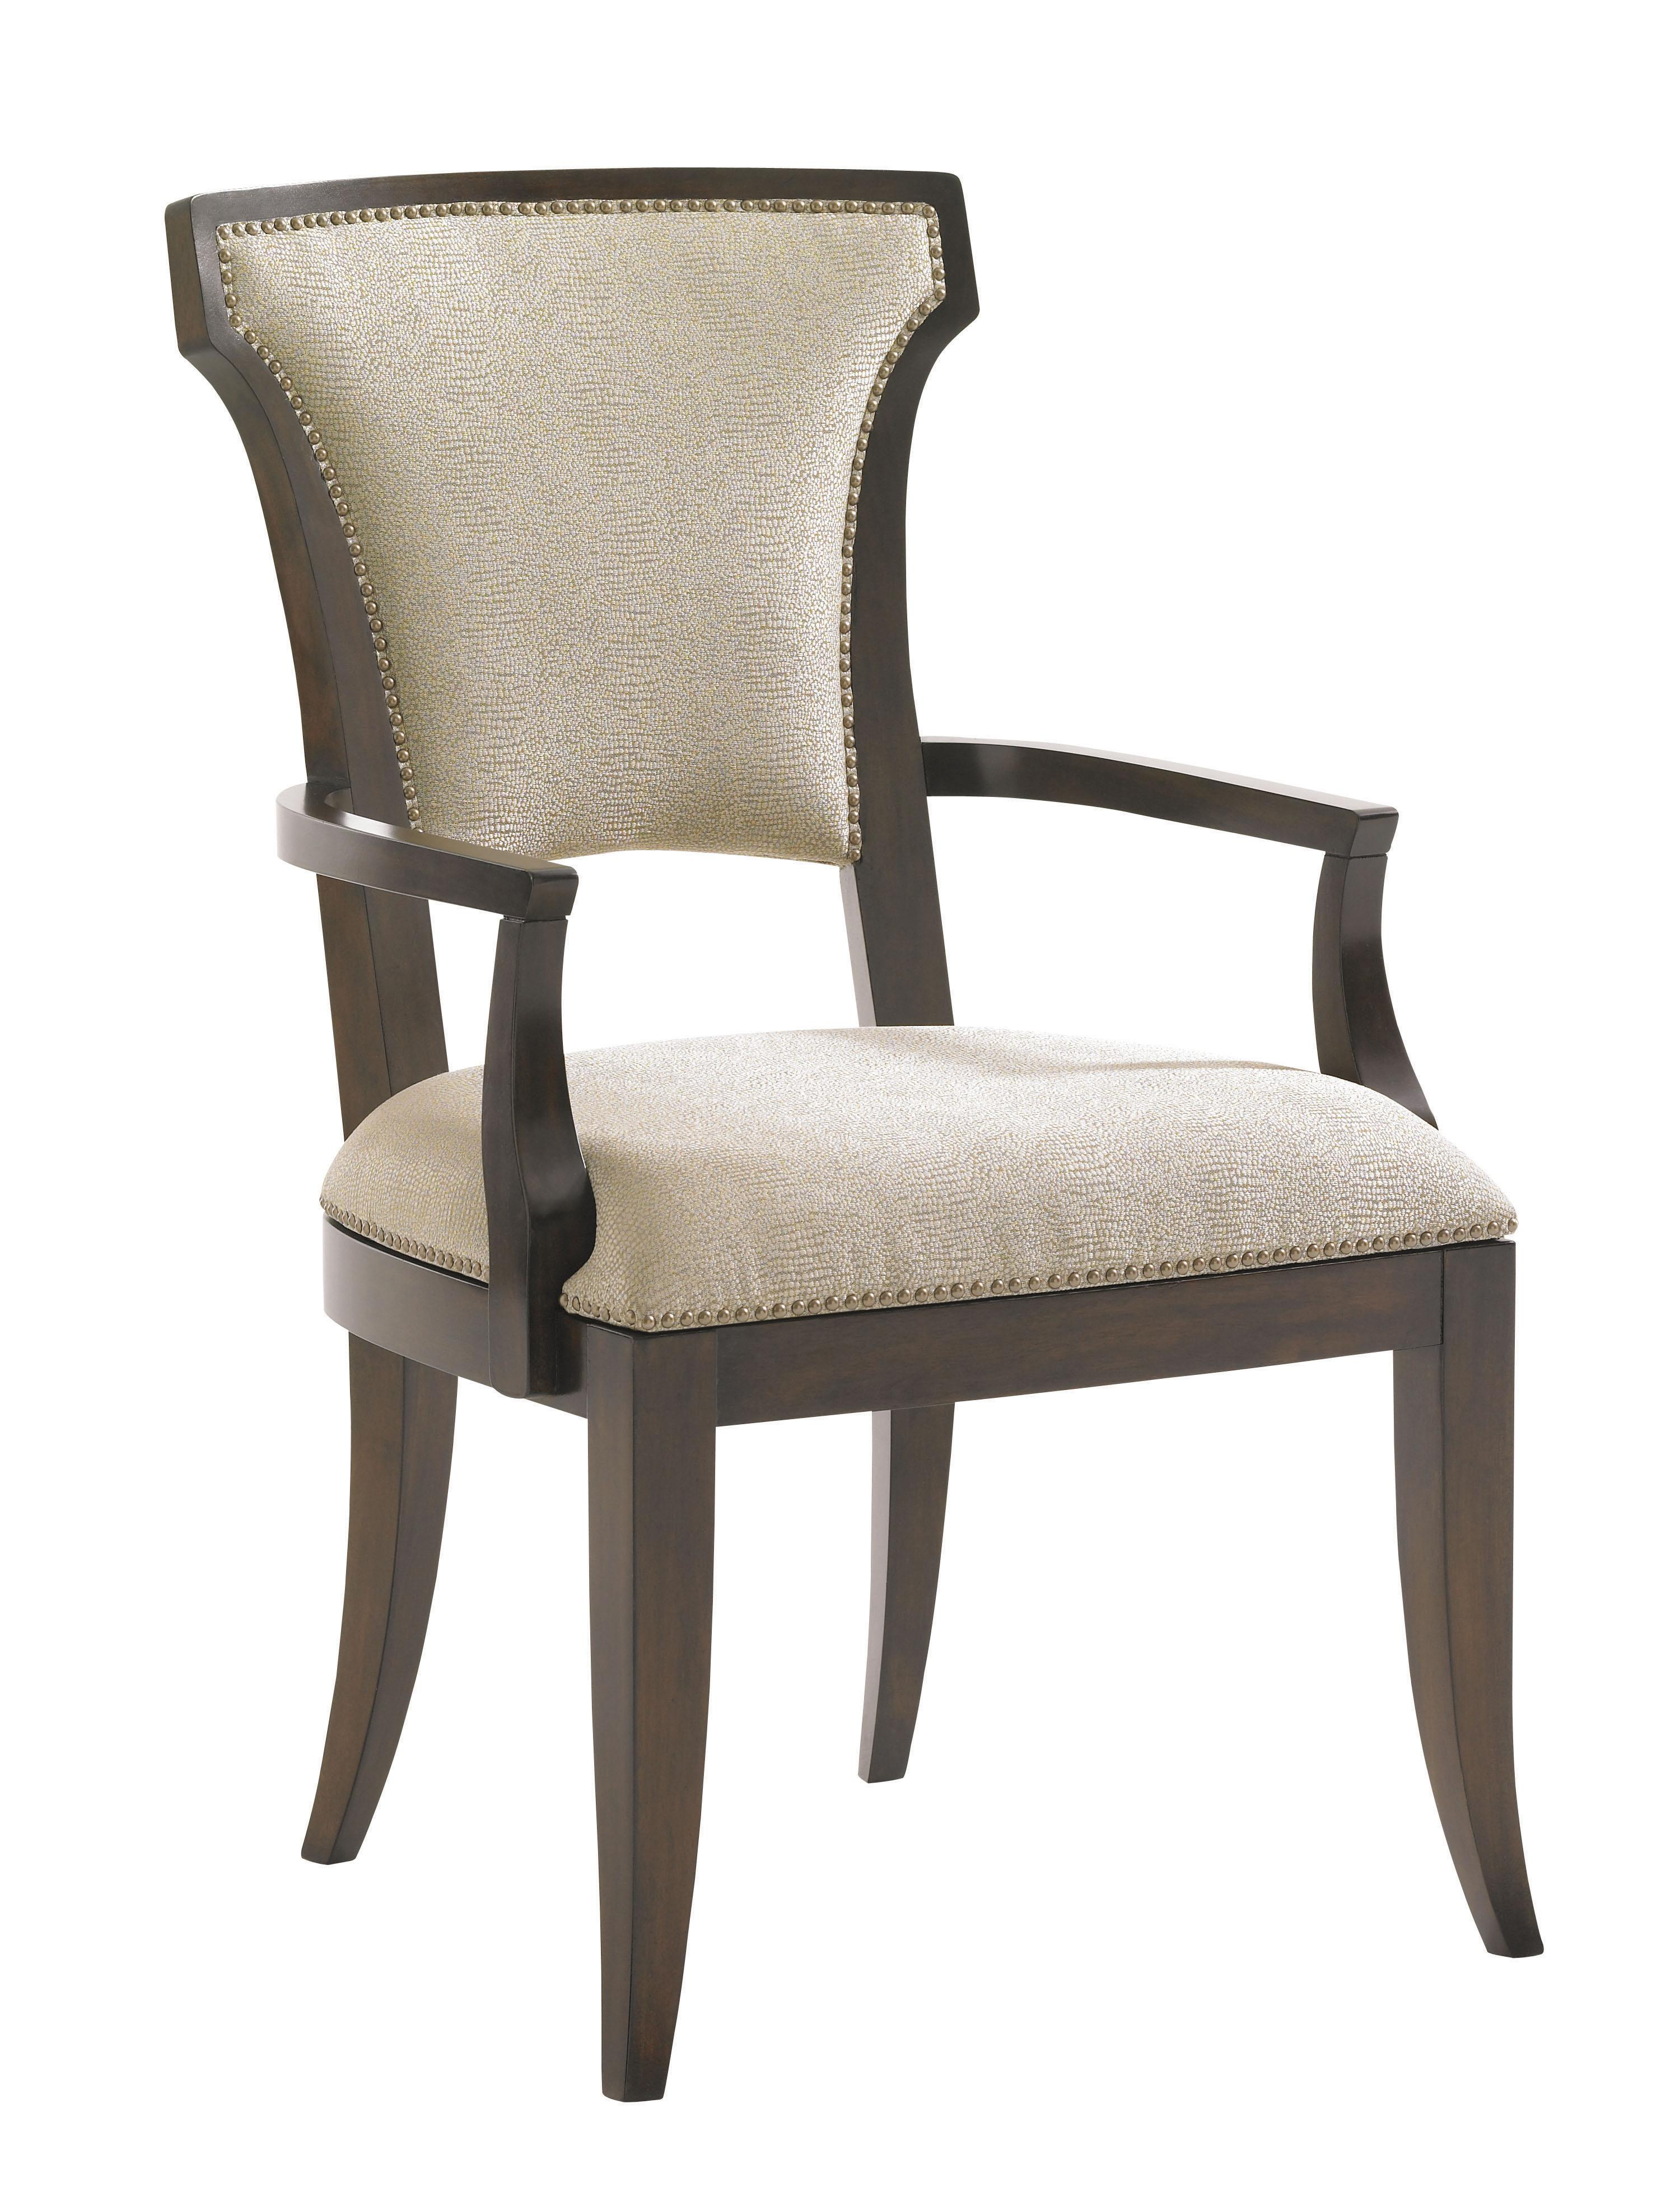 Tower Place Seneca Quickship Arm Chair by Lexington at Baer's Furniture